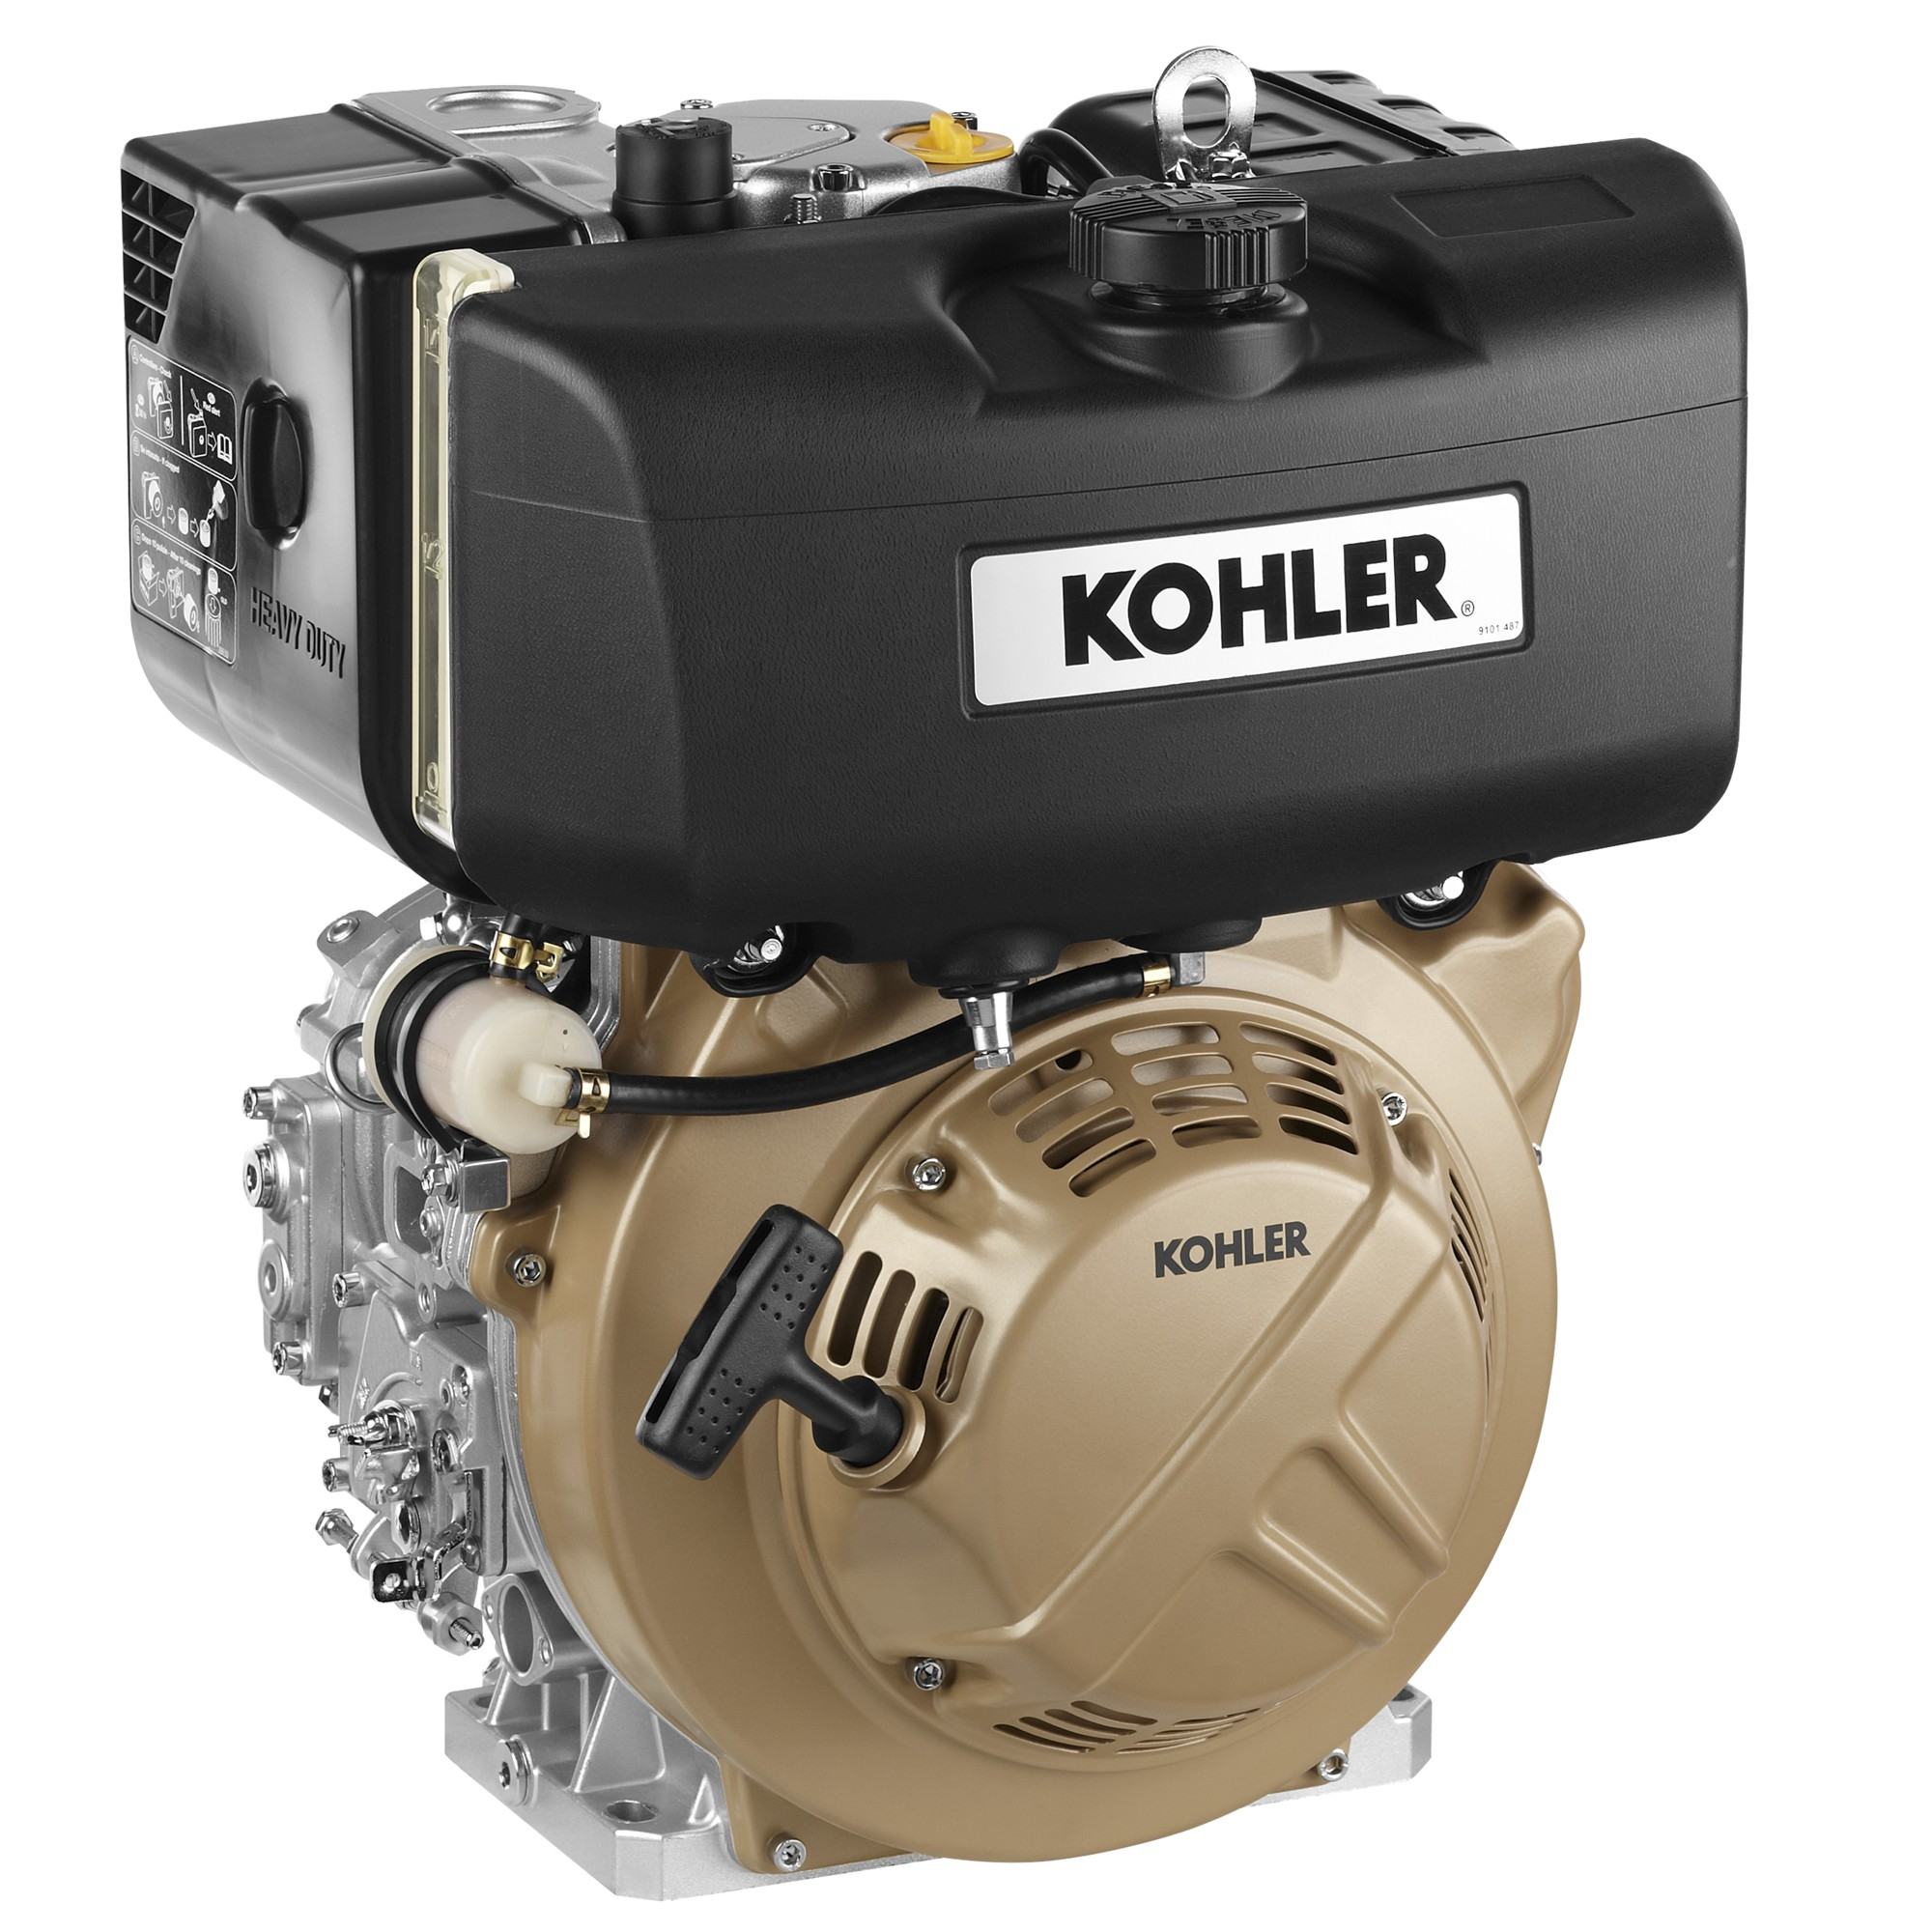 Kohler 26 Hp Engine Manual Ebook Electrical Diagram Economy Array Kd440 Parts Enthusiast Wiring Diagrams U2022 Rh Rasalibre Co